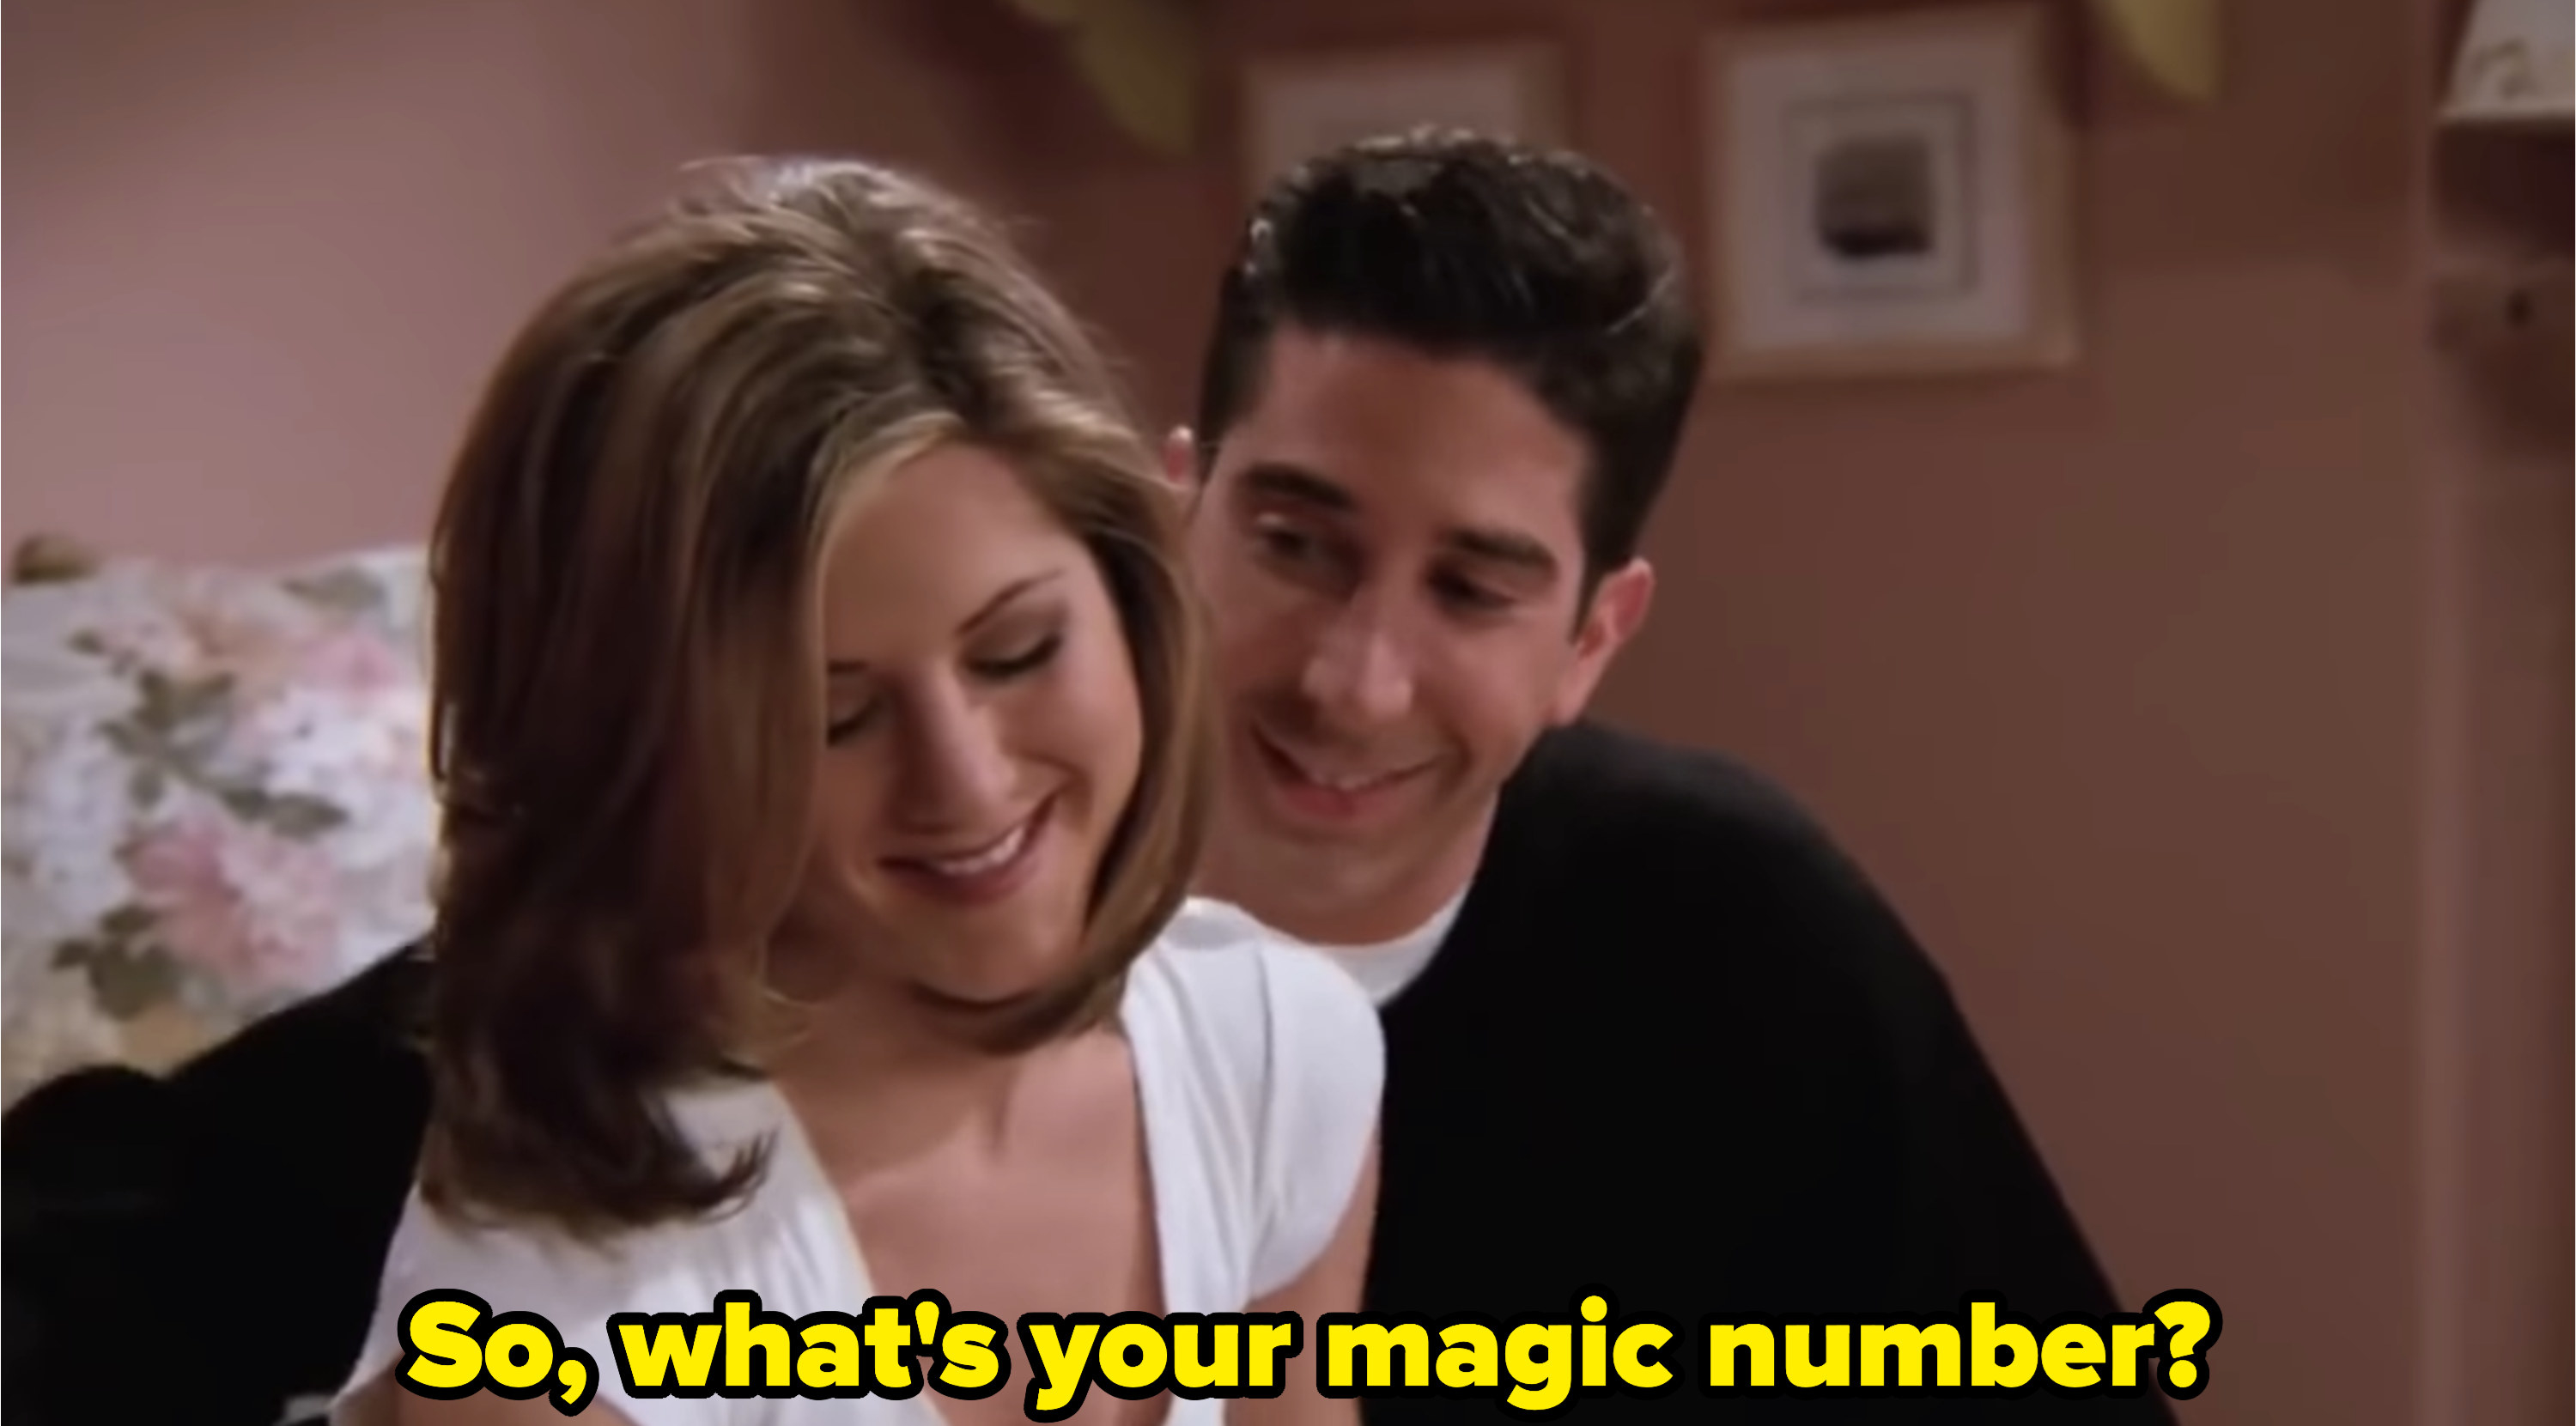 """Ross asking Rachel in bed: """"So, what's your magic number?"""""""